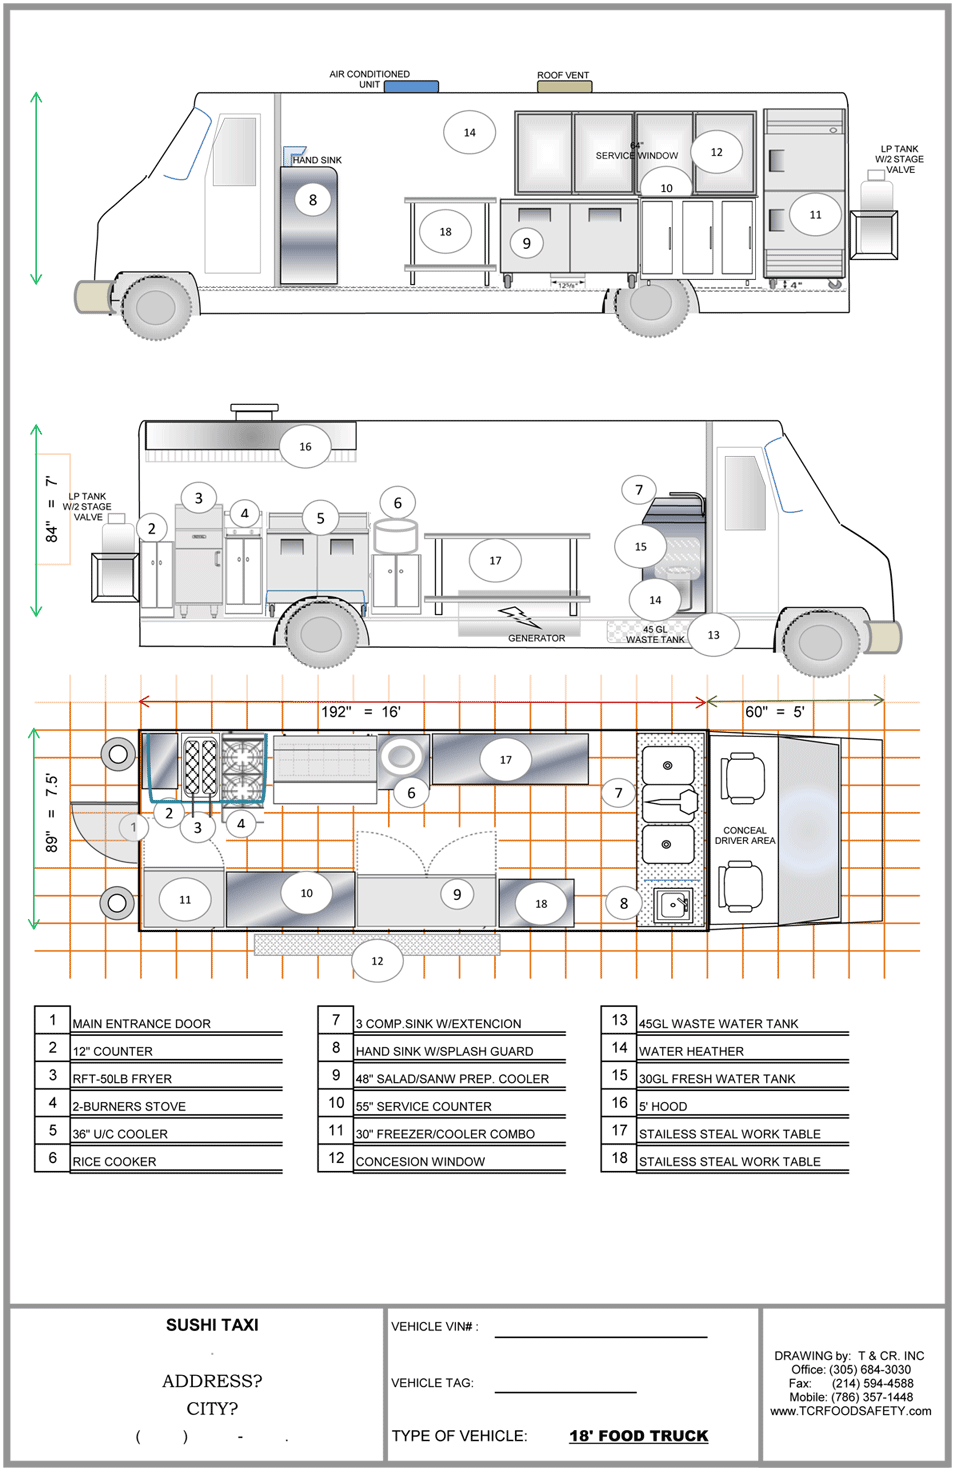 Ft Plan Food Trucks For Sale Used Food Trucks Food Truck Design Food Truck Design Interior Food Truck Business